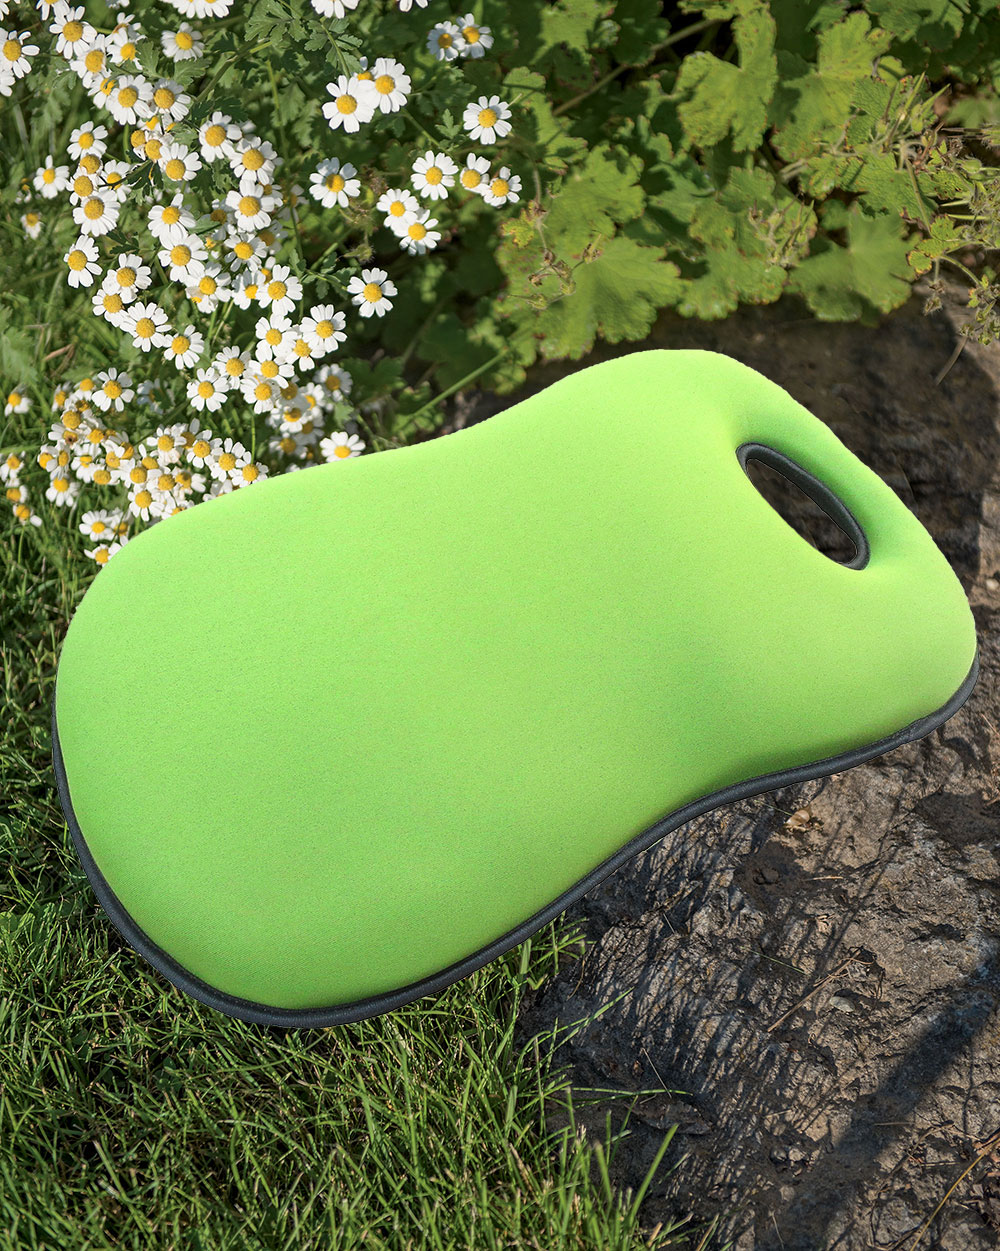 Thuis Comfortabele Neopreen Memory Foam Tuin Knielende Pad